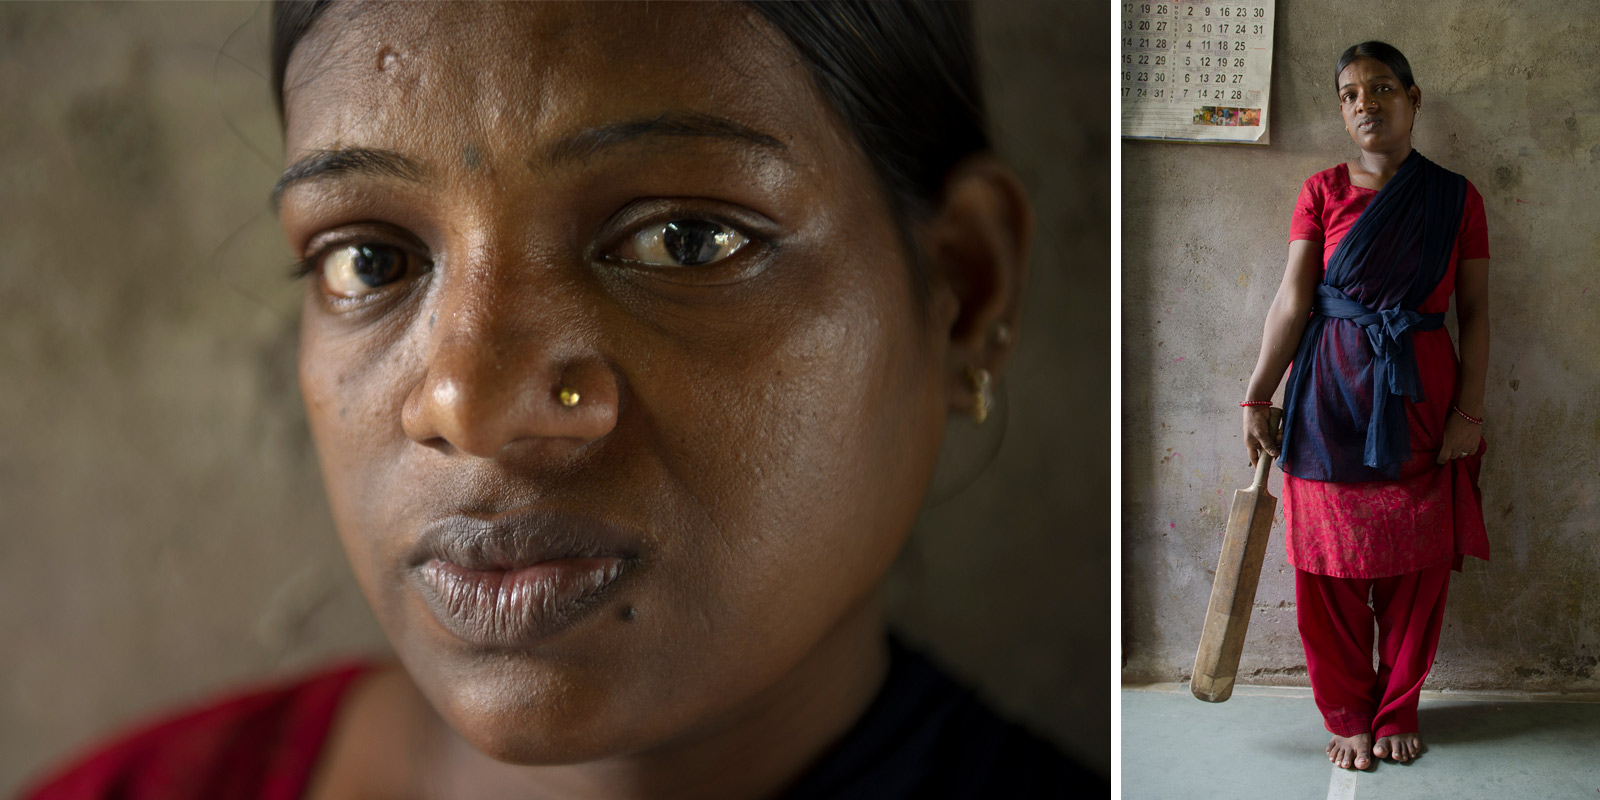 Angela Is The Fireworks Woman 100 million missing women - and the aftermath of acute